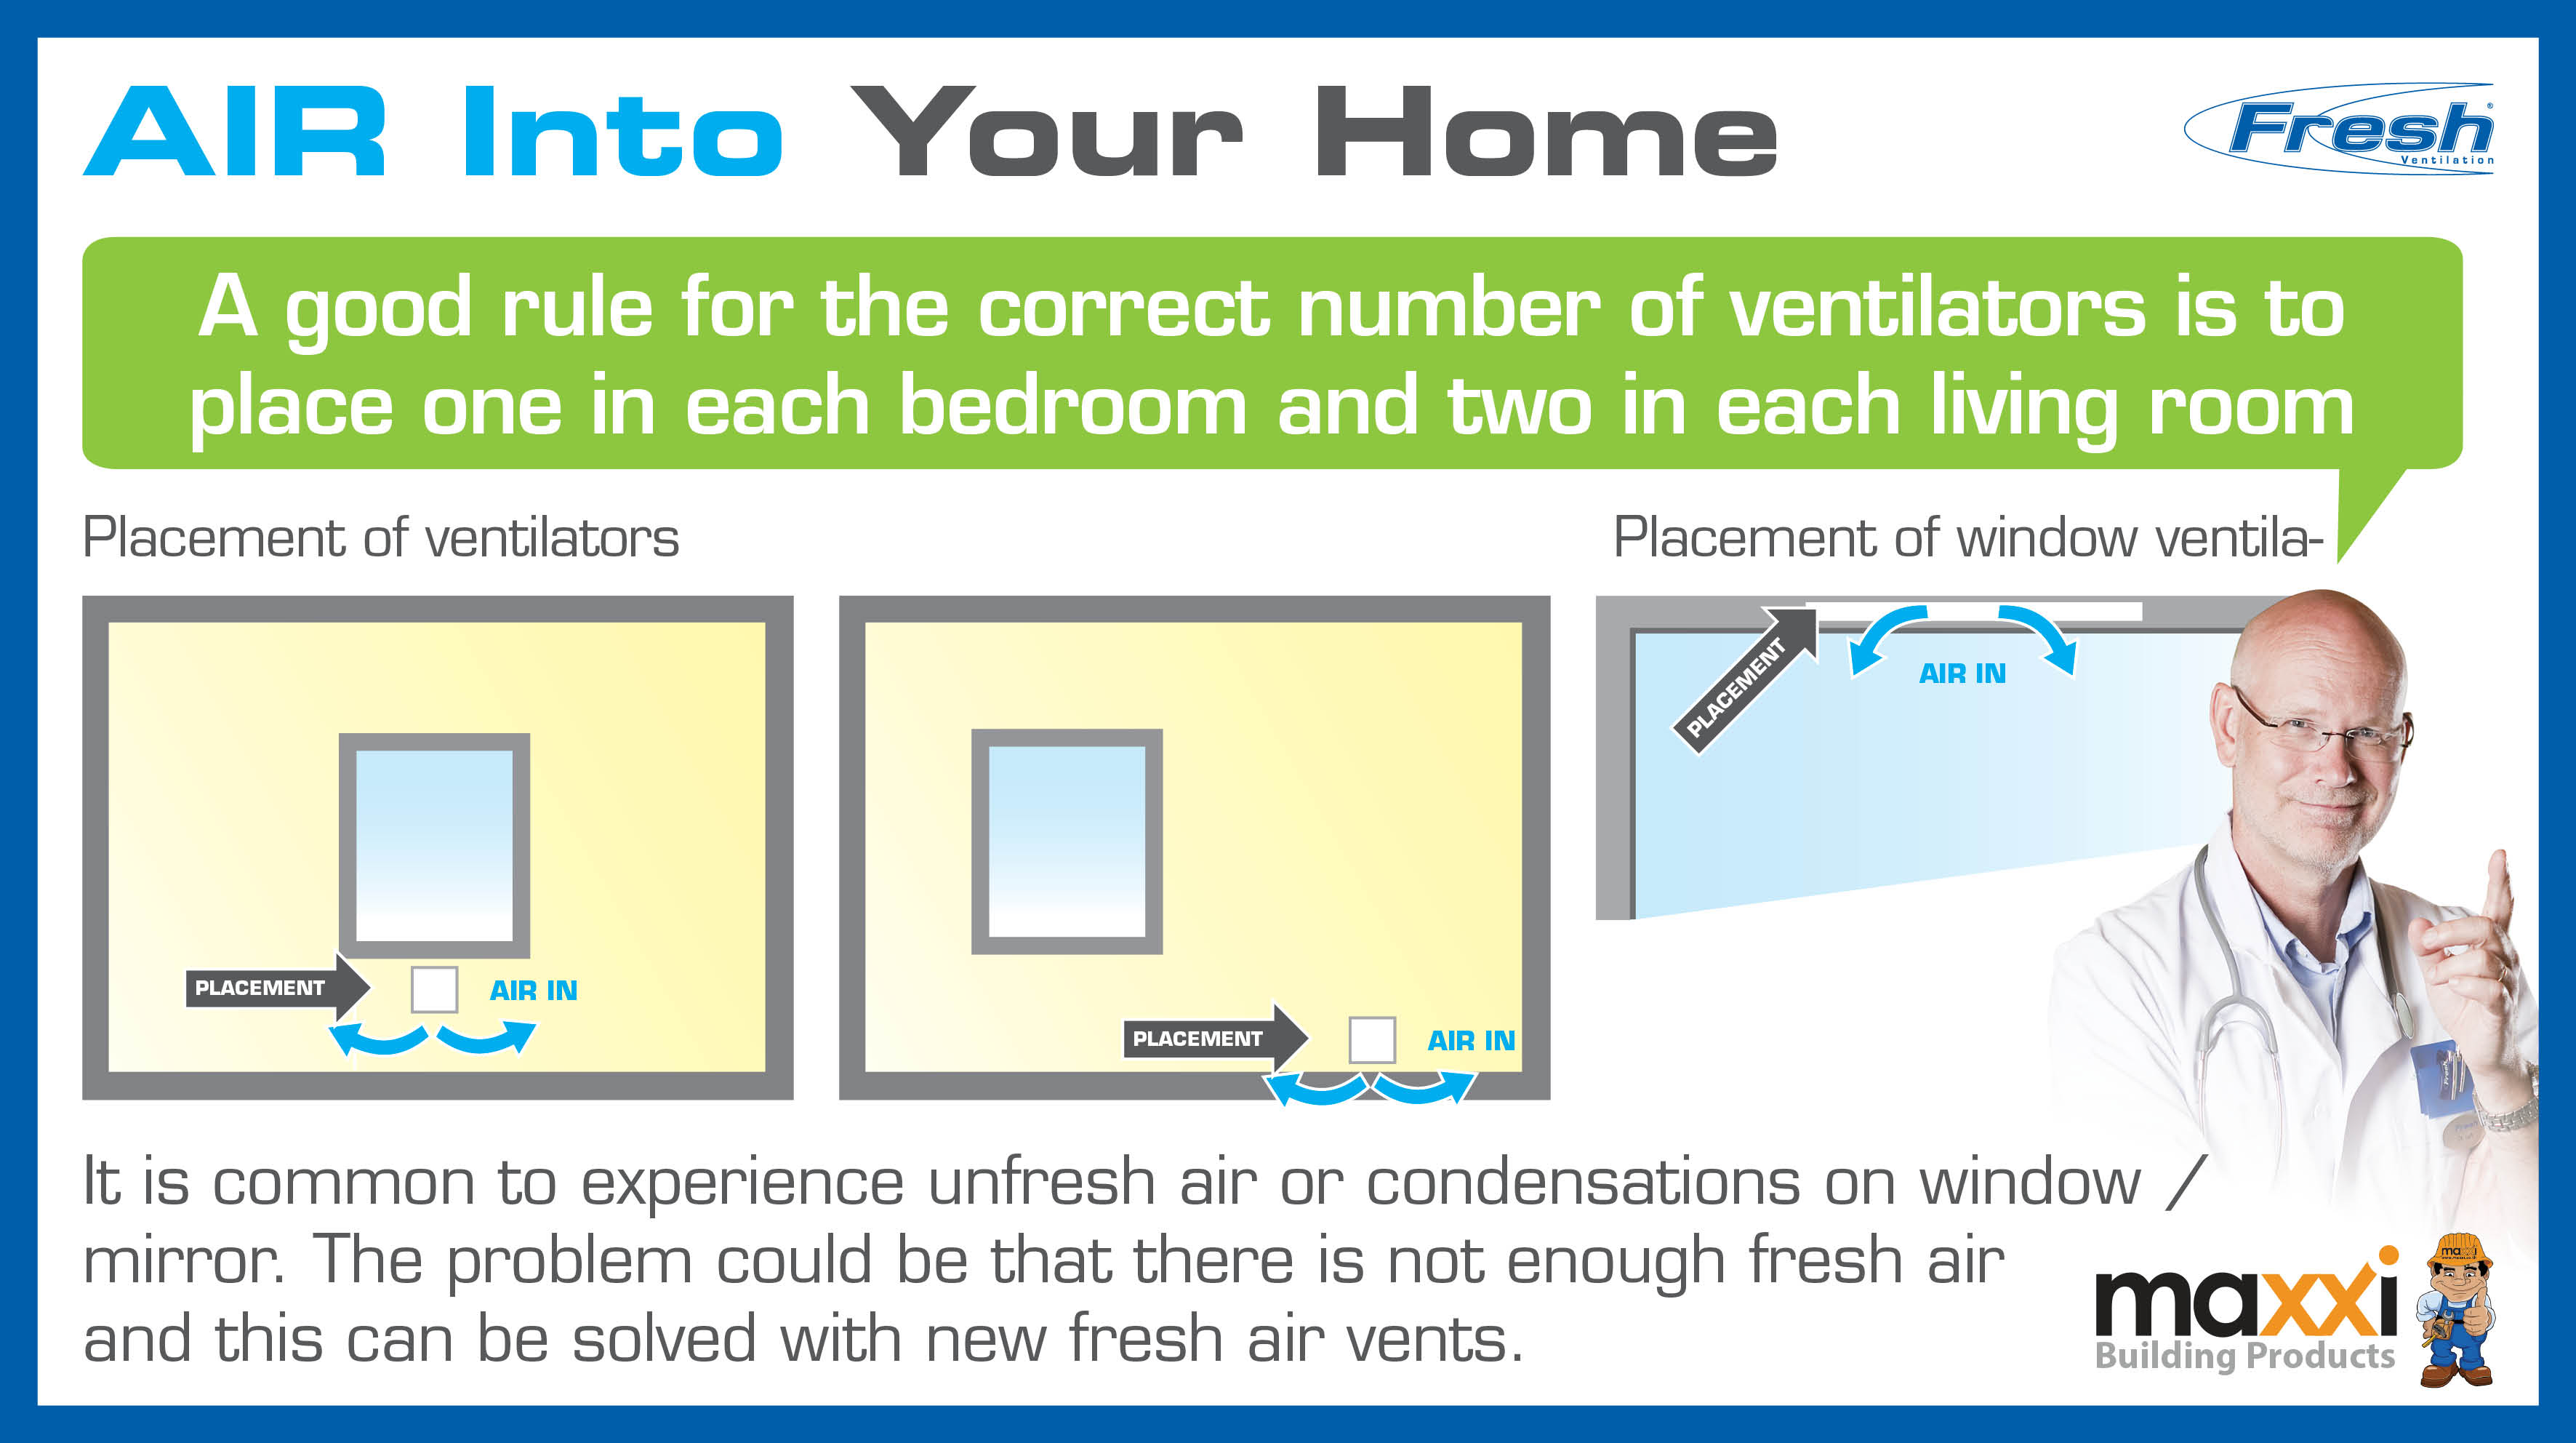 Ventilation Air Into your home